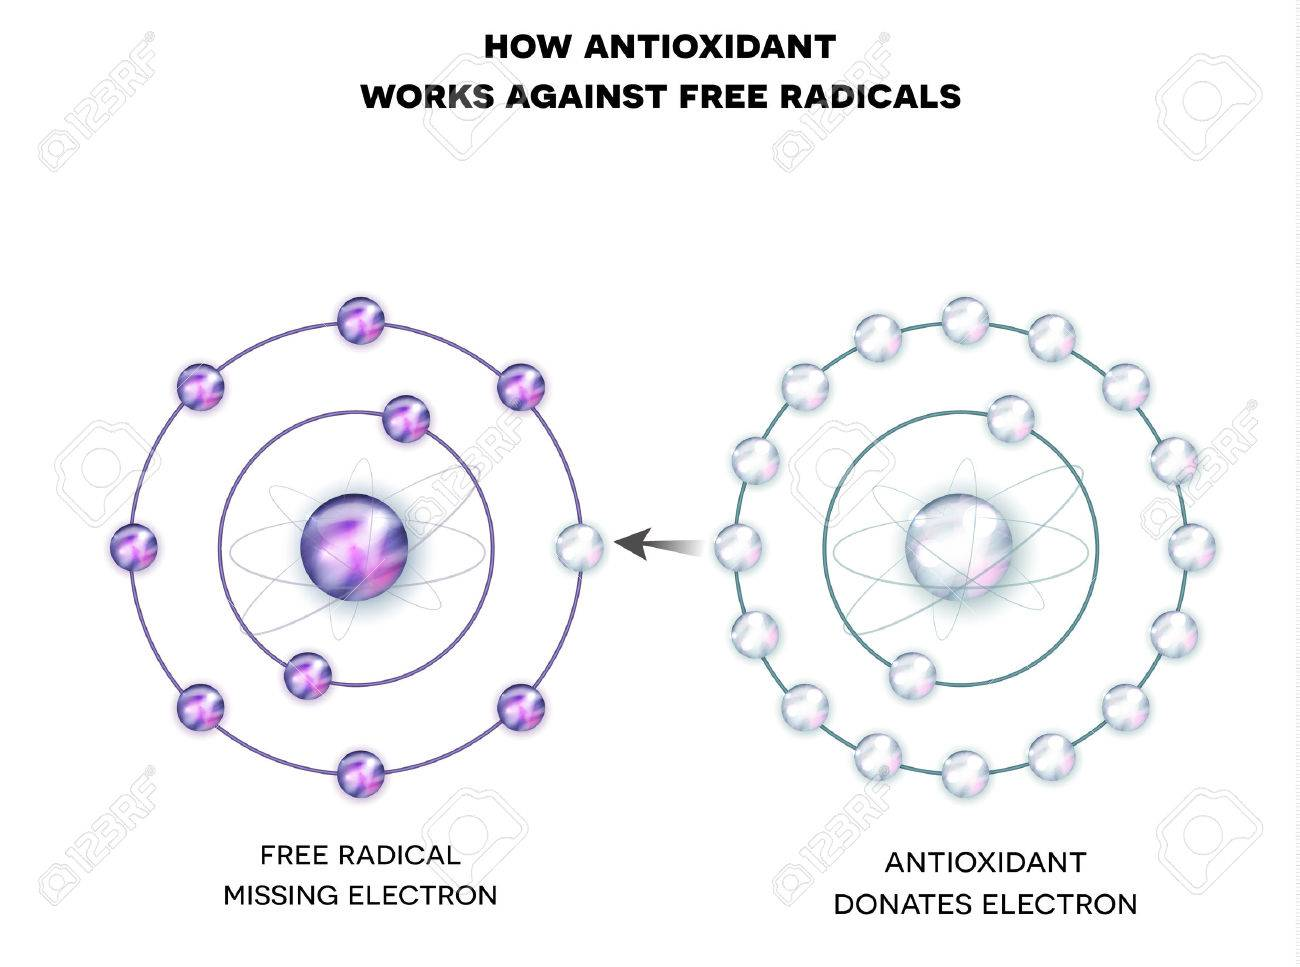 How antioxidant works against free radicals. Antioxidant donates missing electron to Free radical, now all electrons are paired. Banque d'images - 67396215